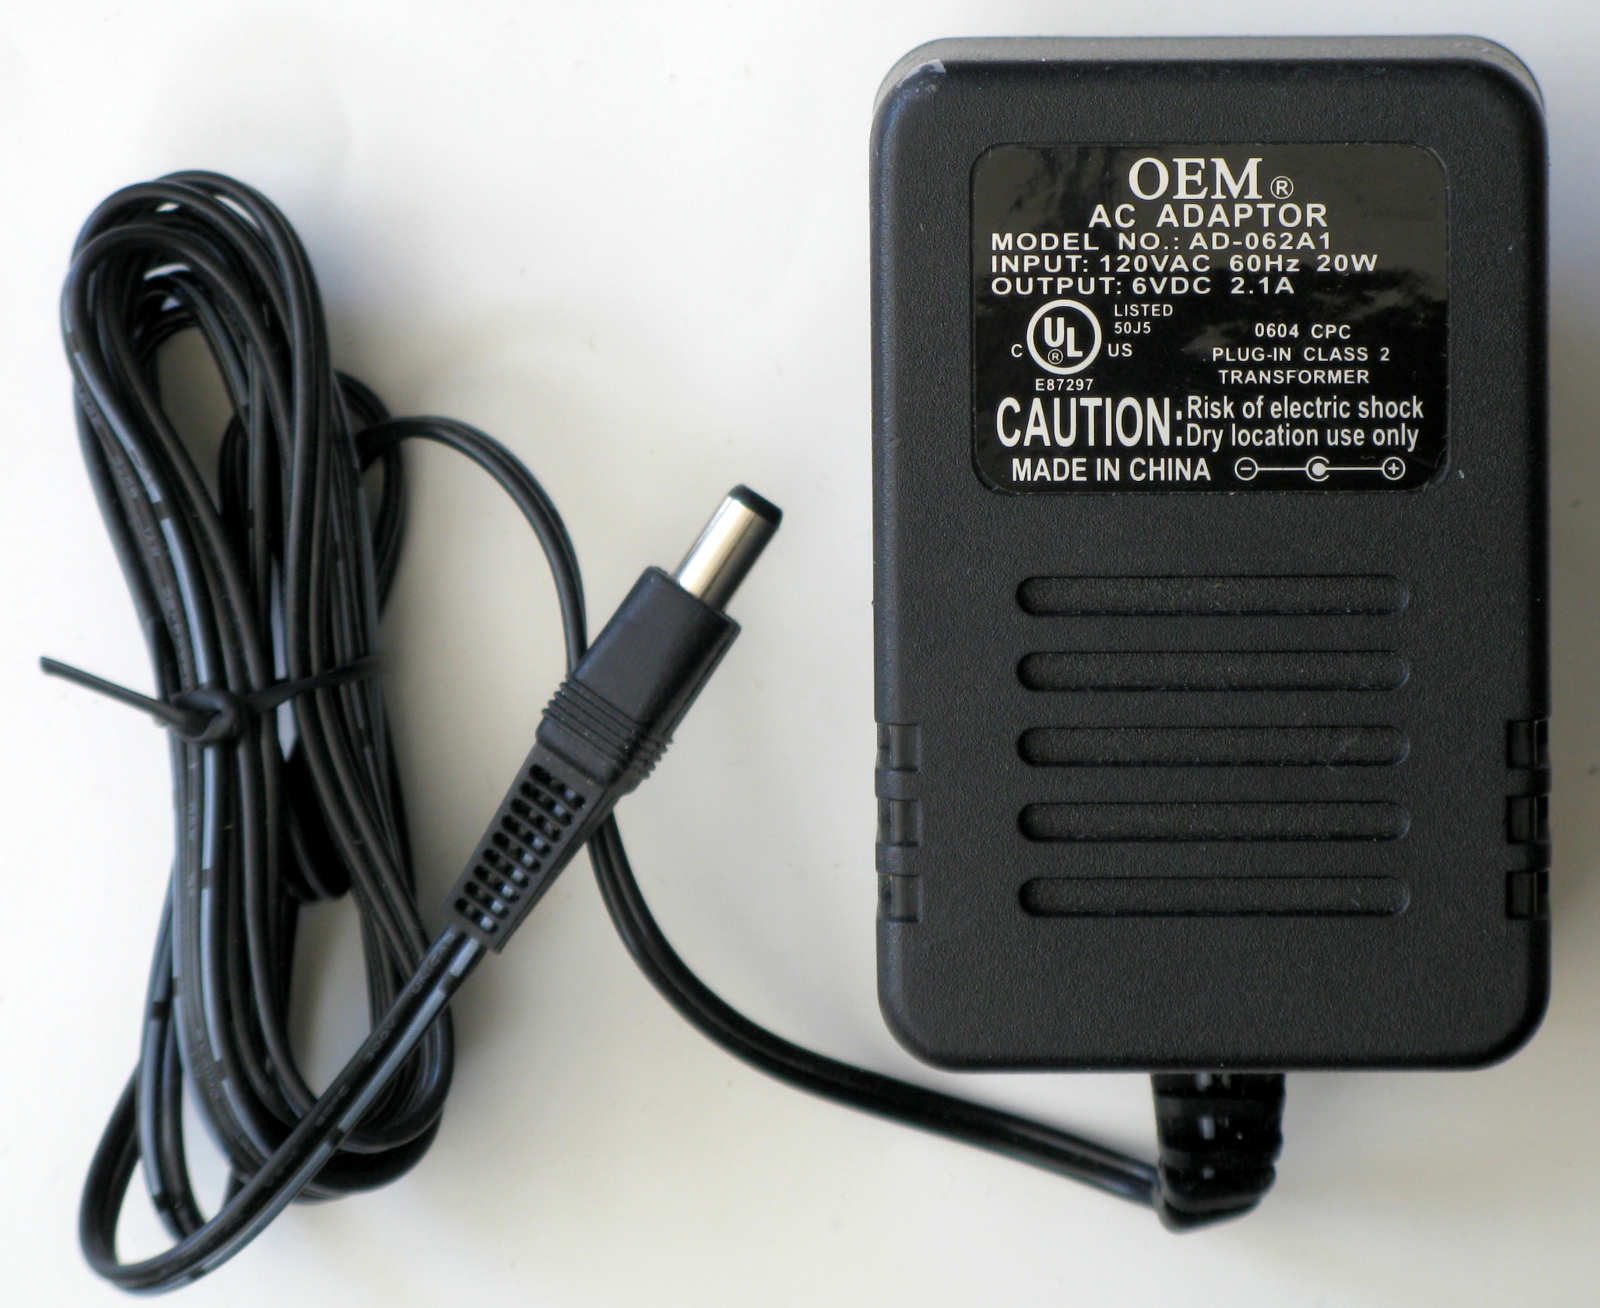 Hamilton Electronics Replacement 12V AC Power Adapter for 900 Series Transmitter